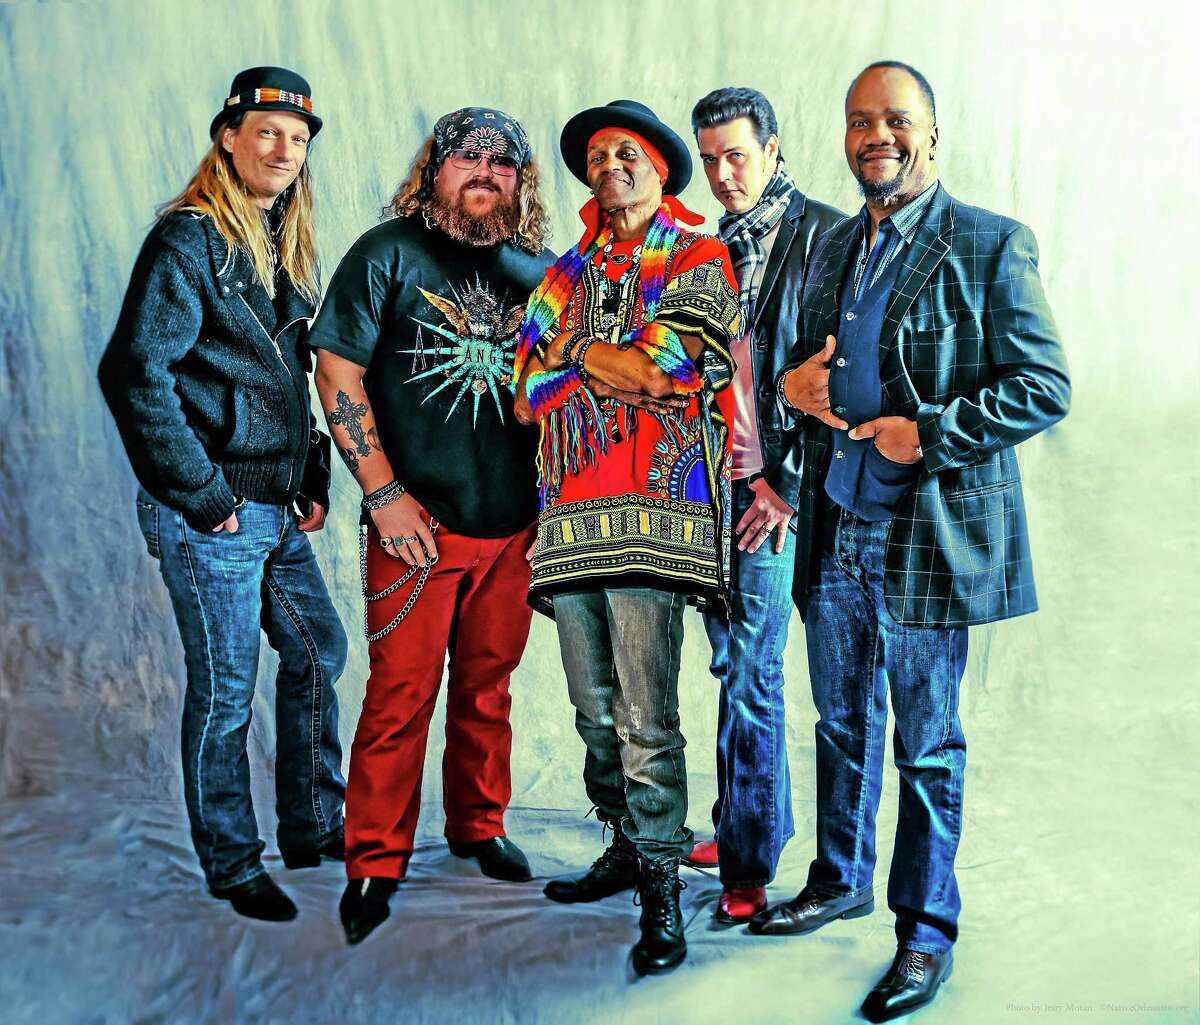 Contributed photo The rock supergroup, Royal Southern Brotherhood are set to perform ìliveî in concert at The Stafford Palace Theater in Stafford Springs on Friday, Aug. 28.